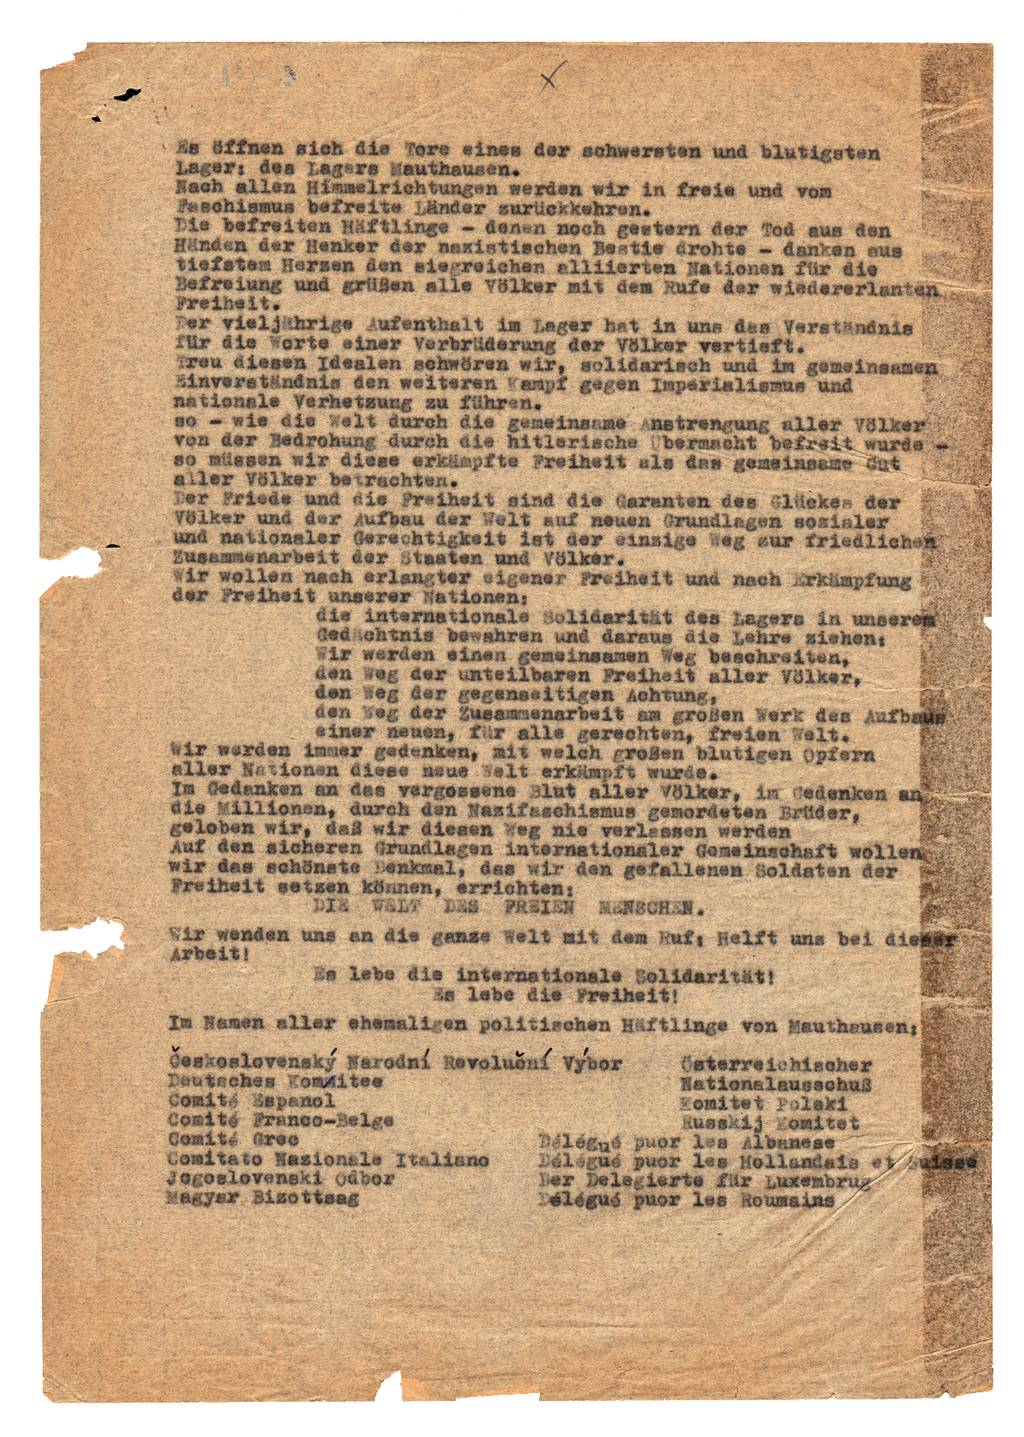 The 'Mauthausen Oath' of the international prisoner commitee, May 1945 (Mauthausen Memorial / Collections)